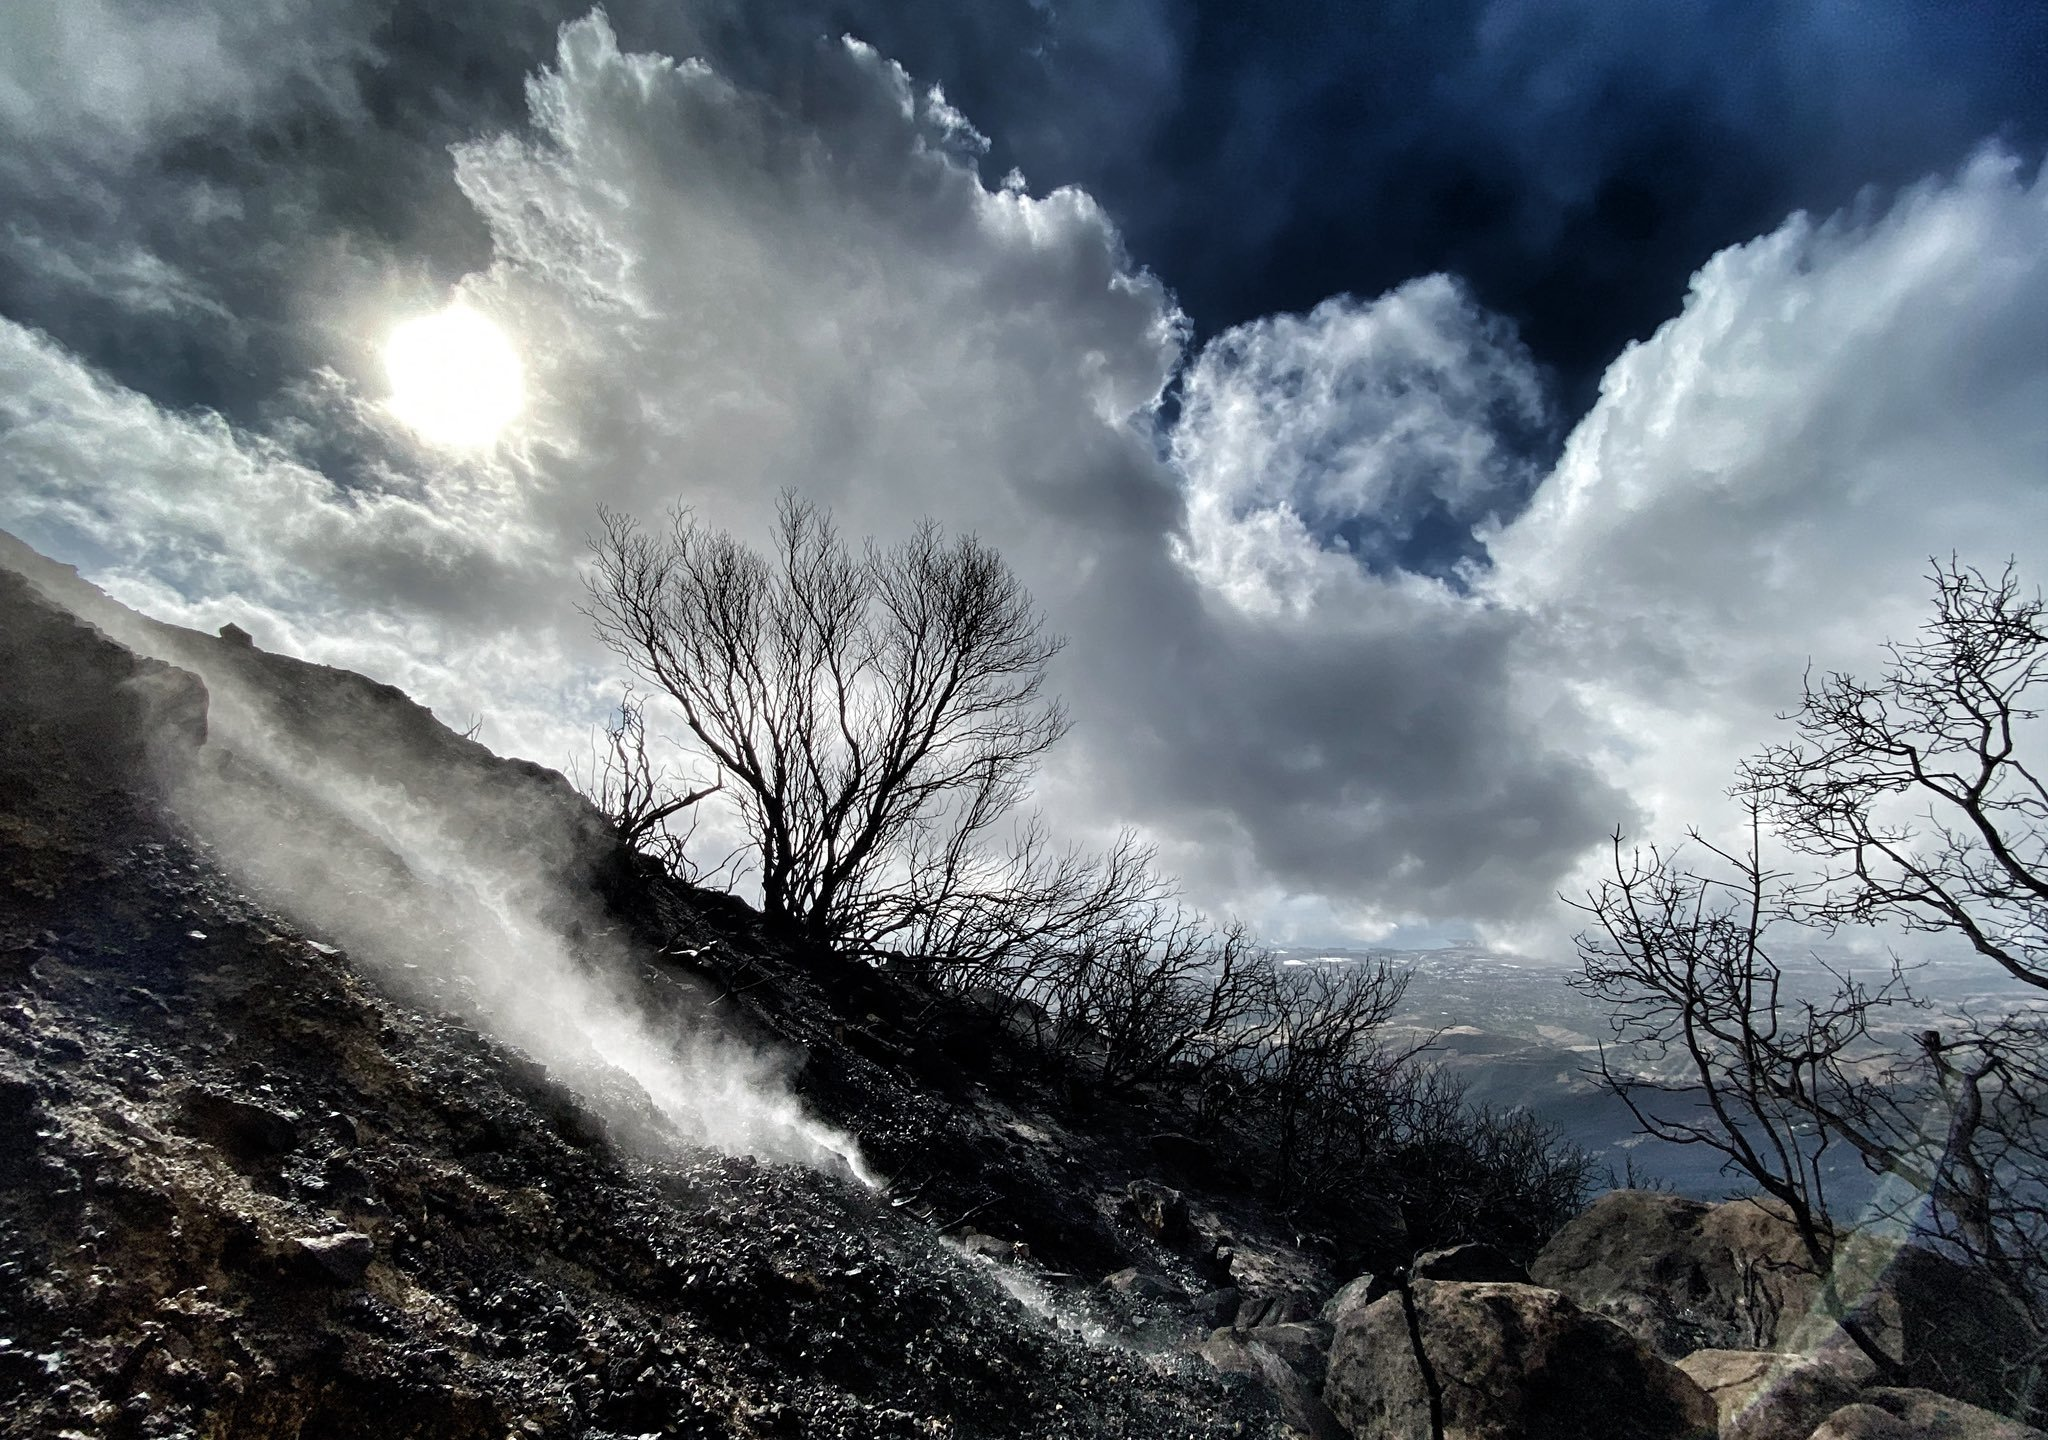 A burn area on East Camino Cielo smolders after rain soaked the Cave Fire burning near Santa Barbara on Nov. 27, 2019. (Credit: Eliason Mike/Santa Barbara County Fire Department)